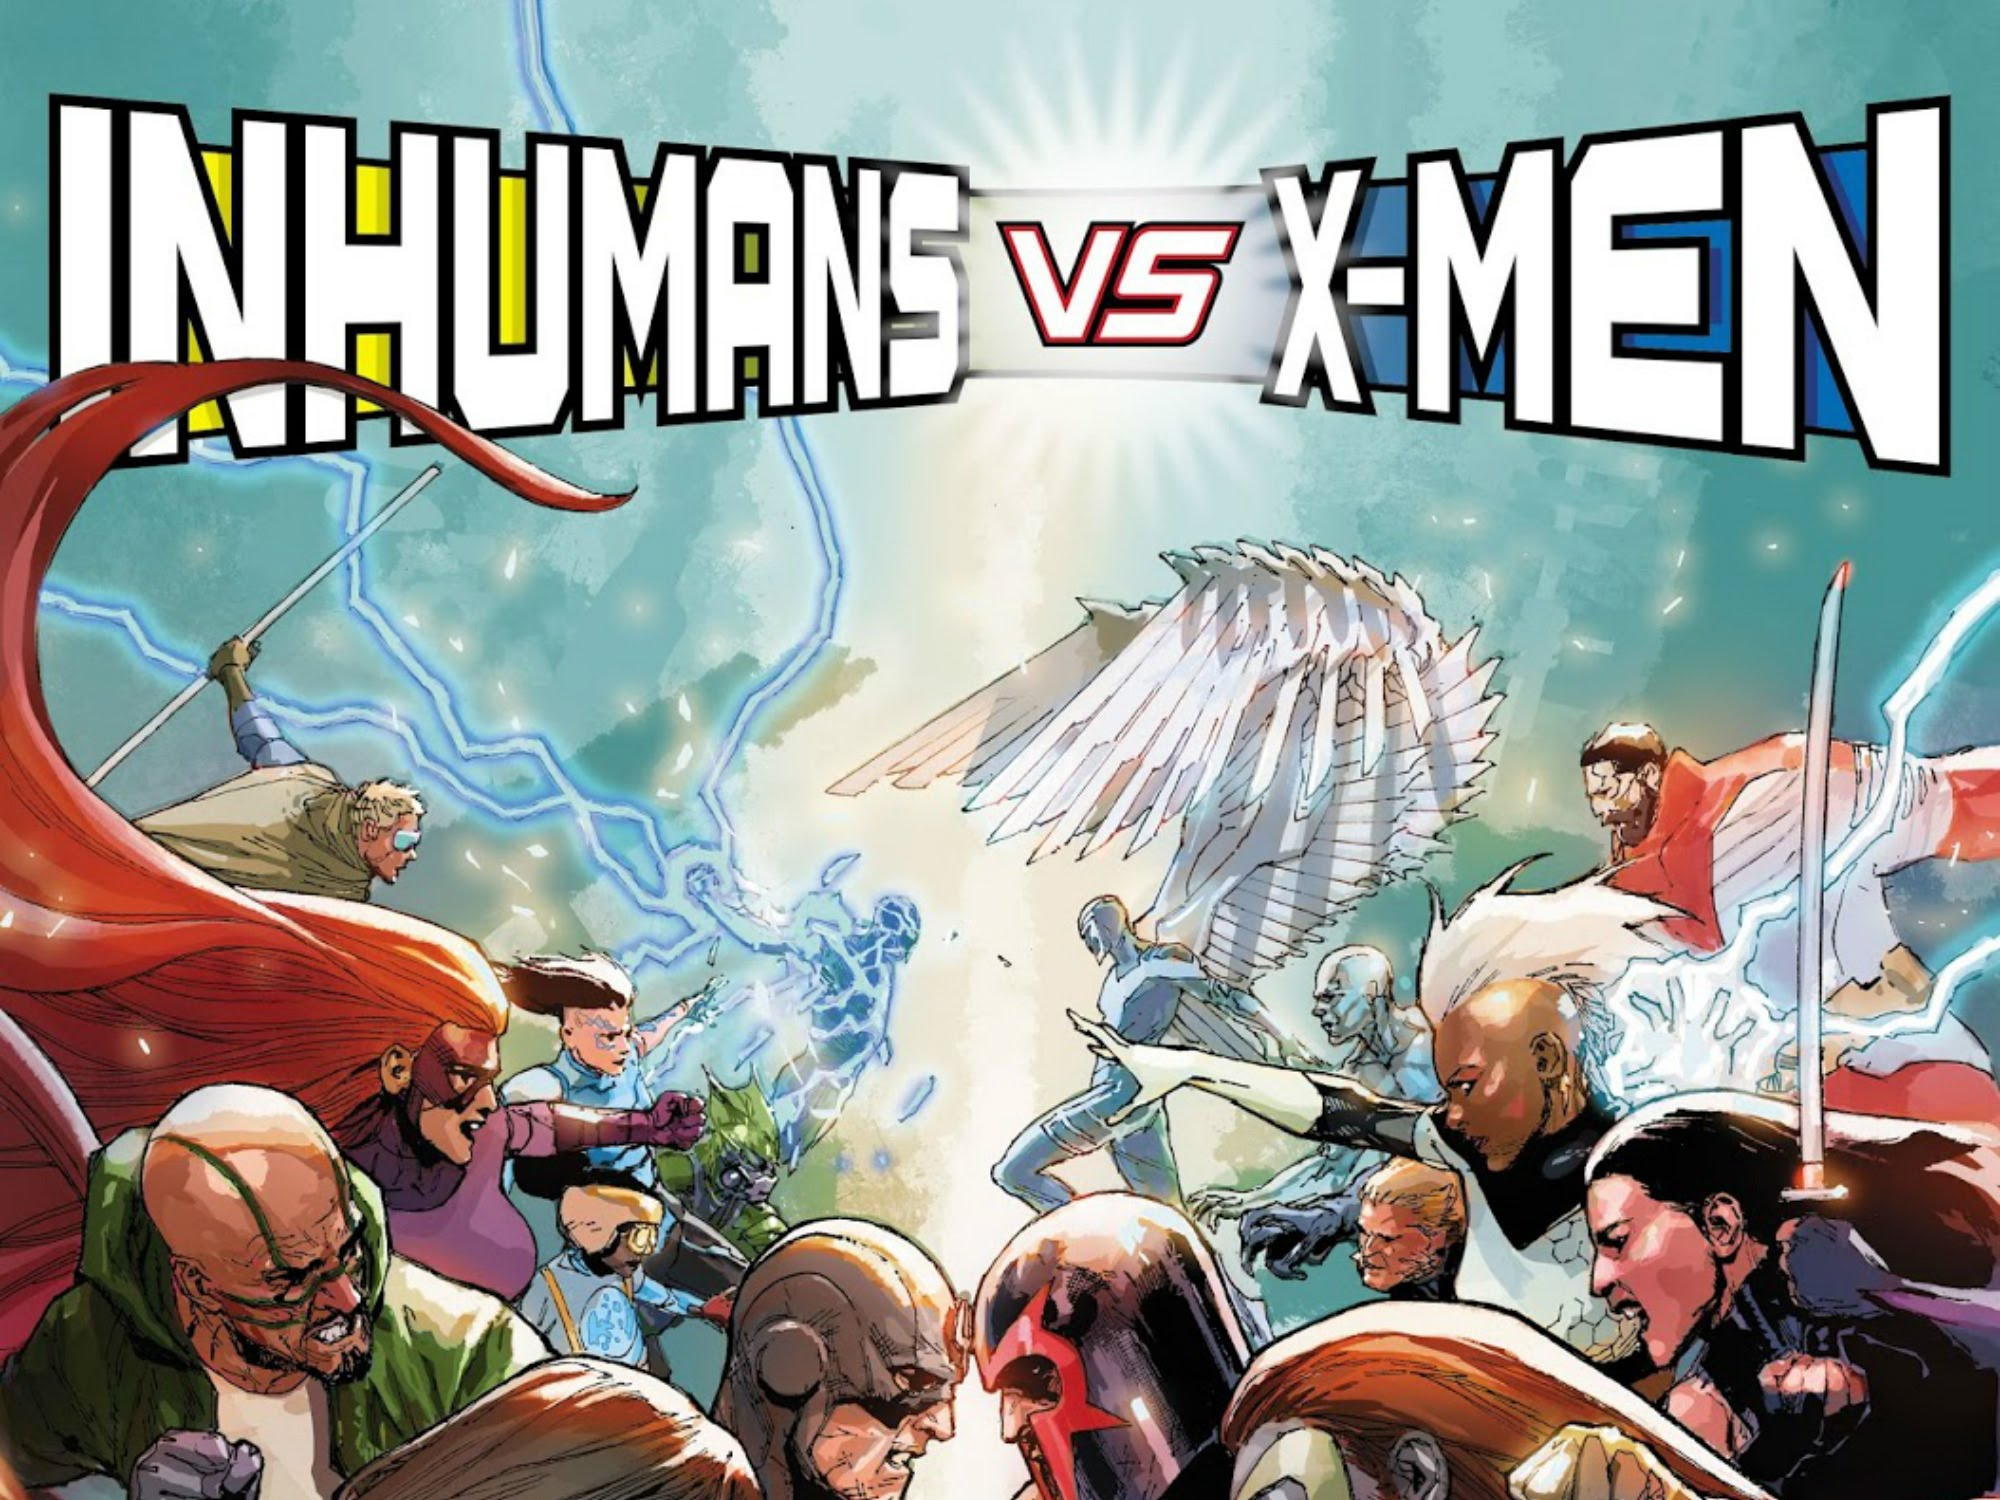 Inhumans vs. X-Men #1 Review: